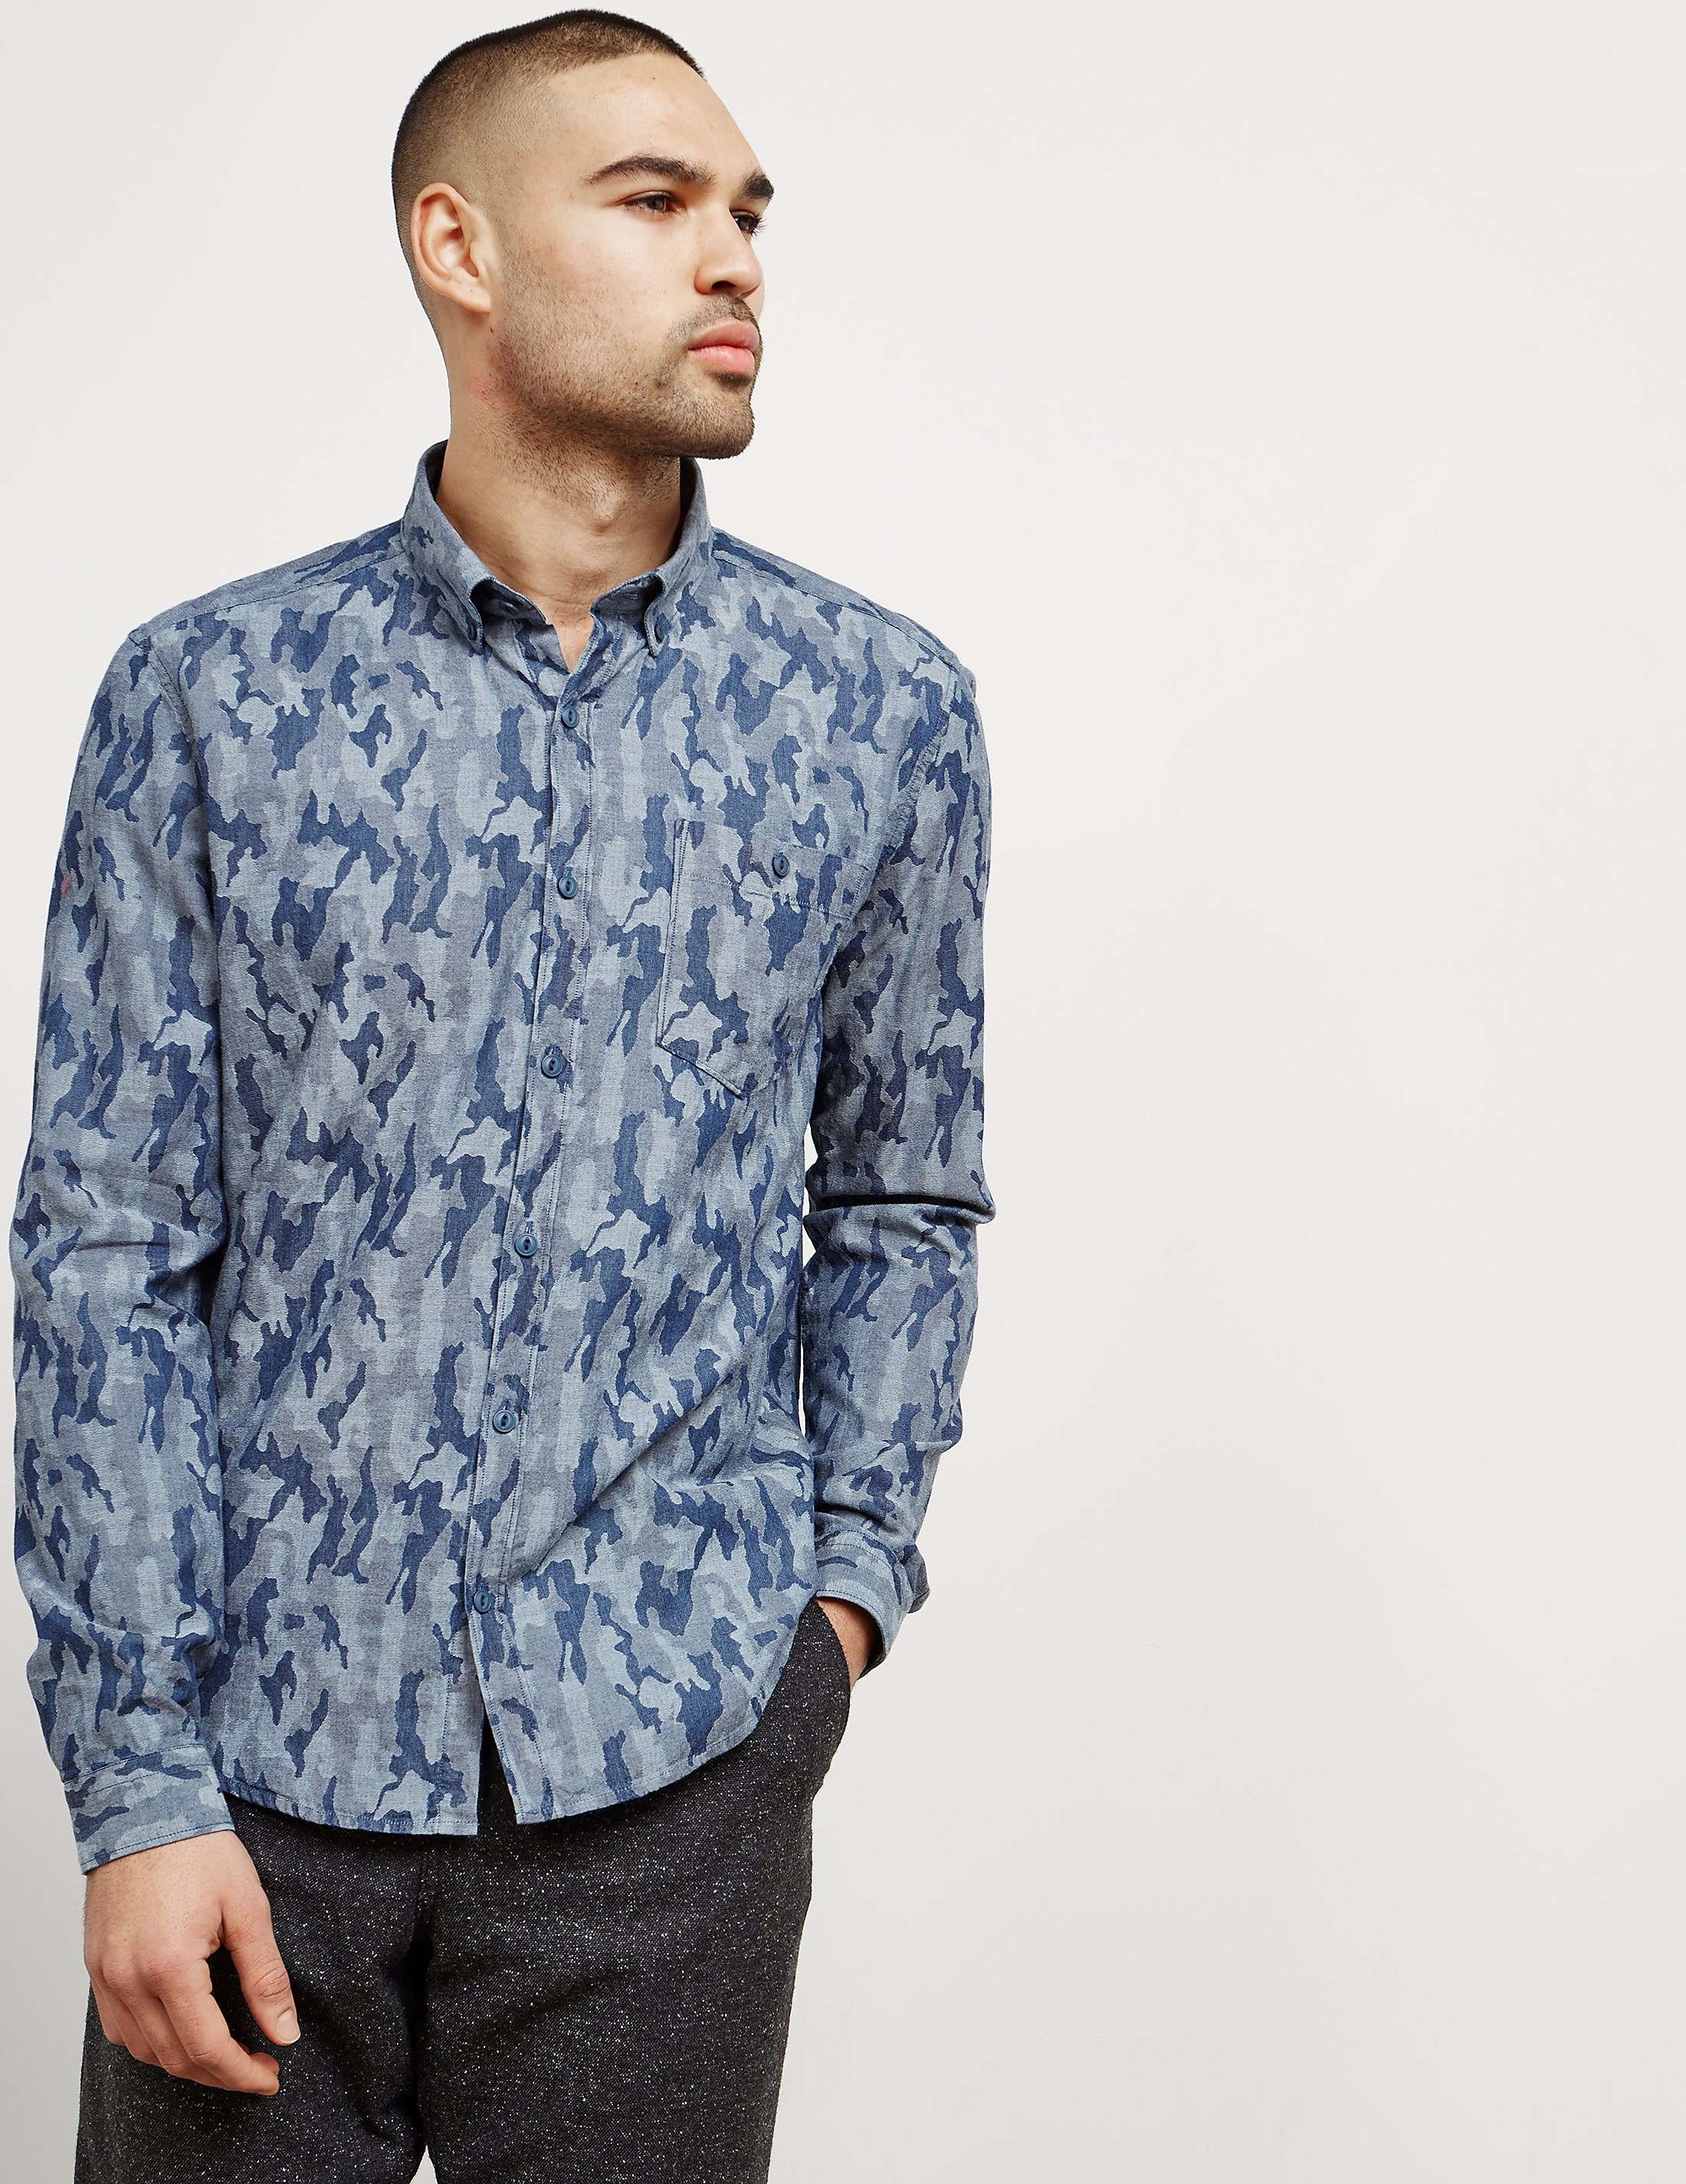 Barbour Camouflage Long Sleeve Shirt